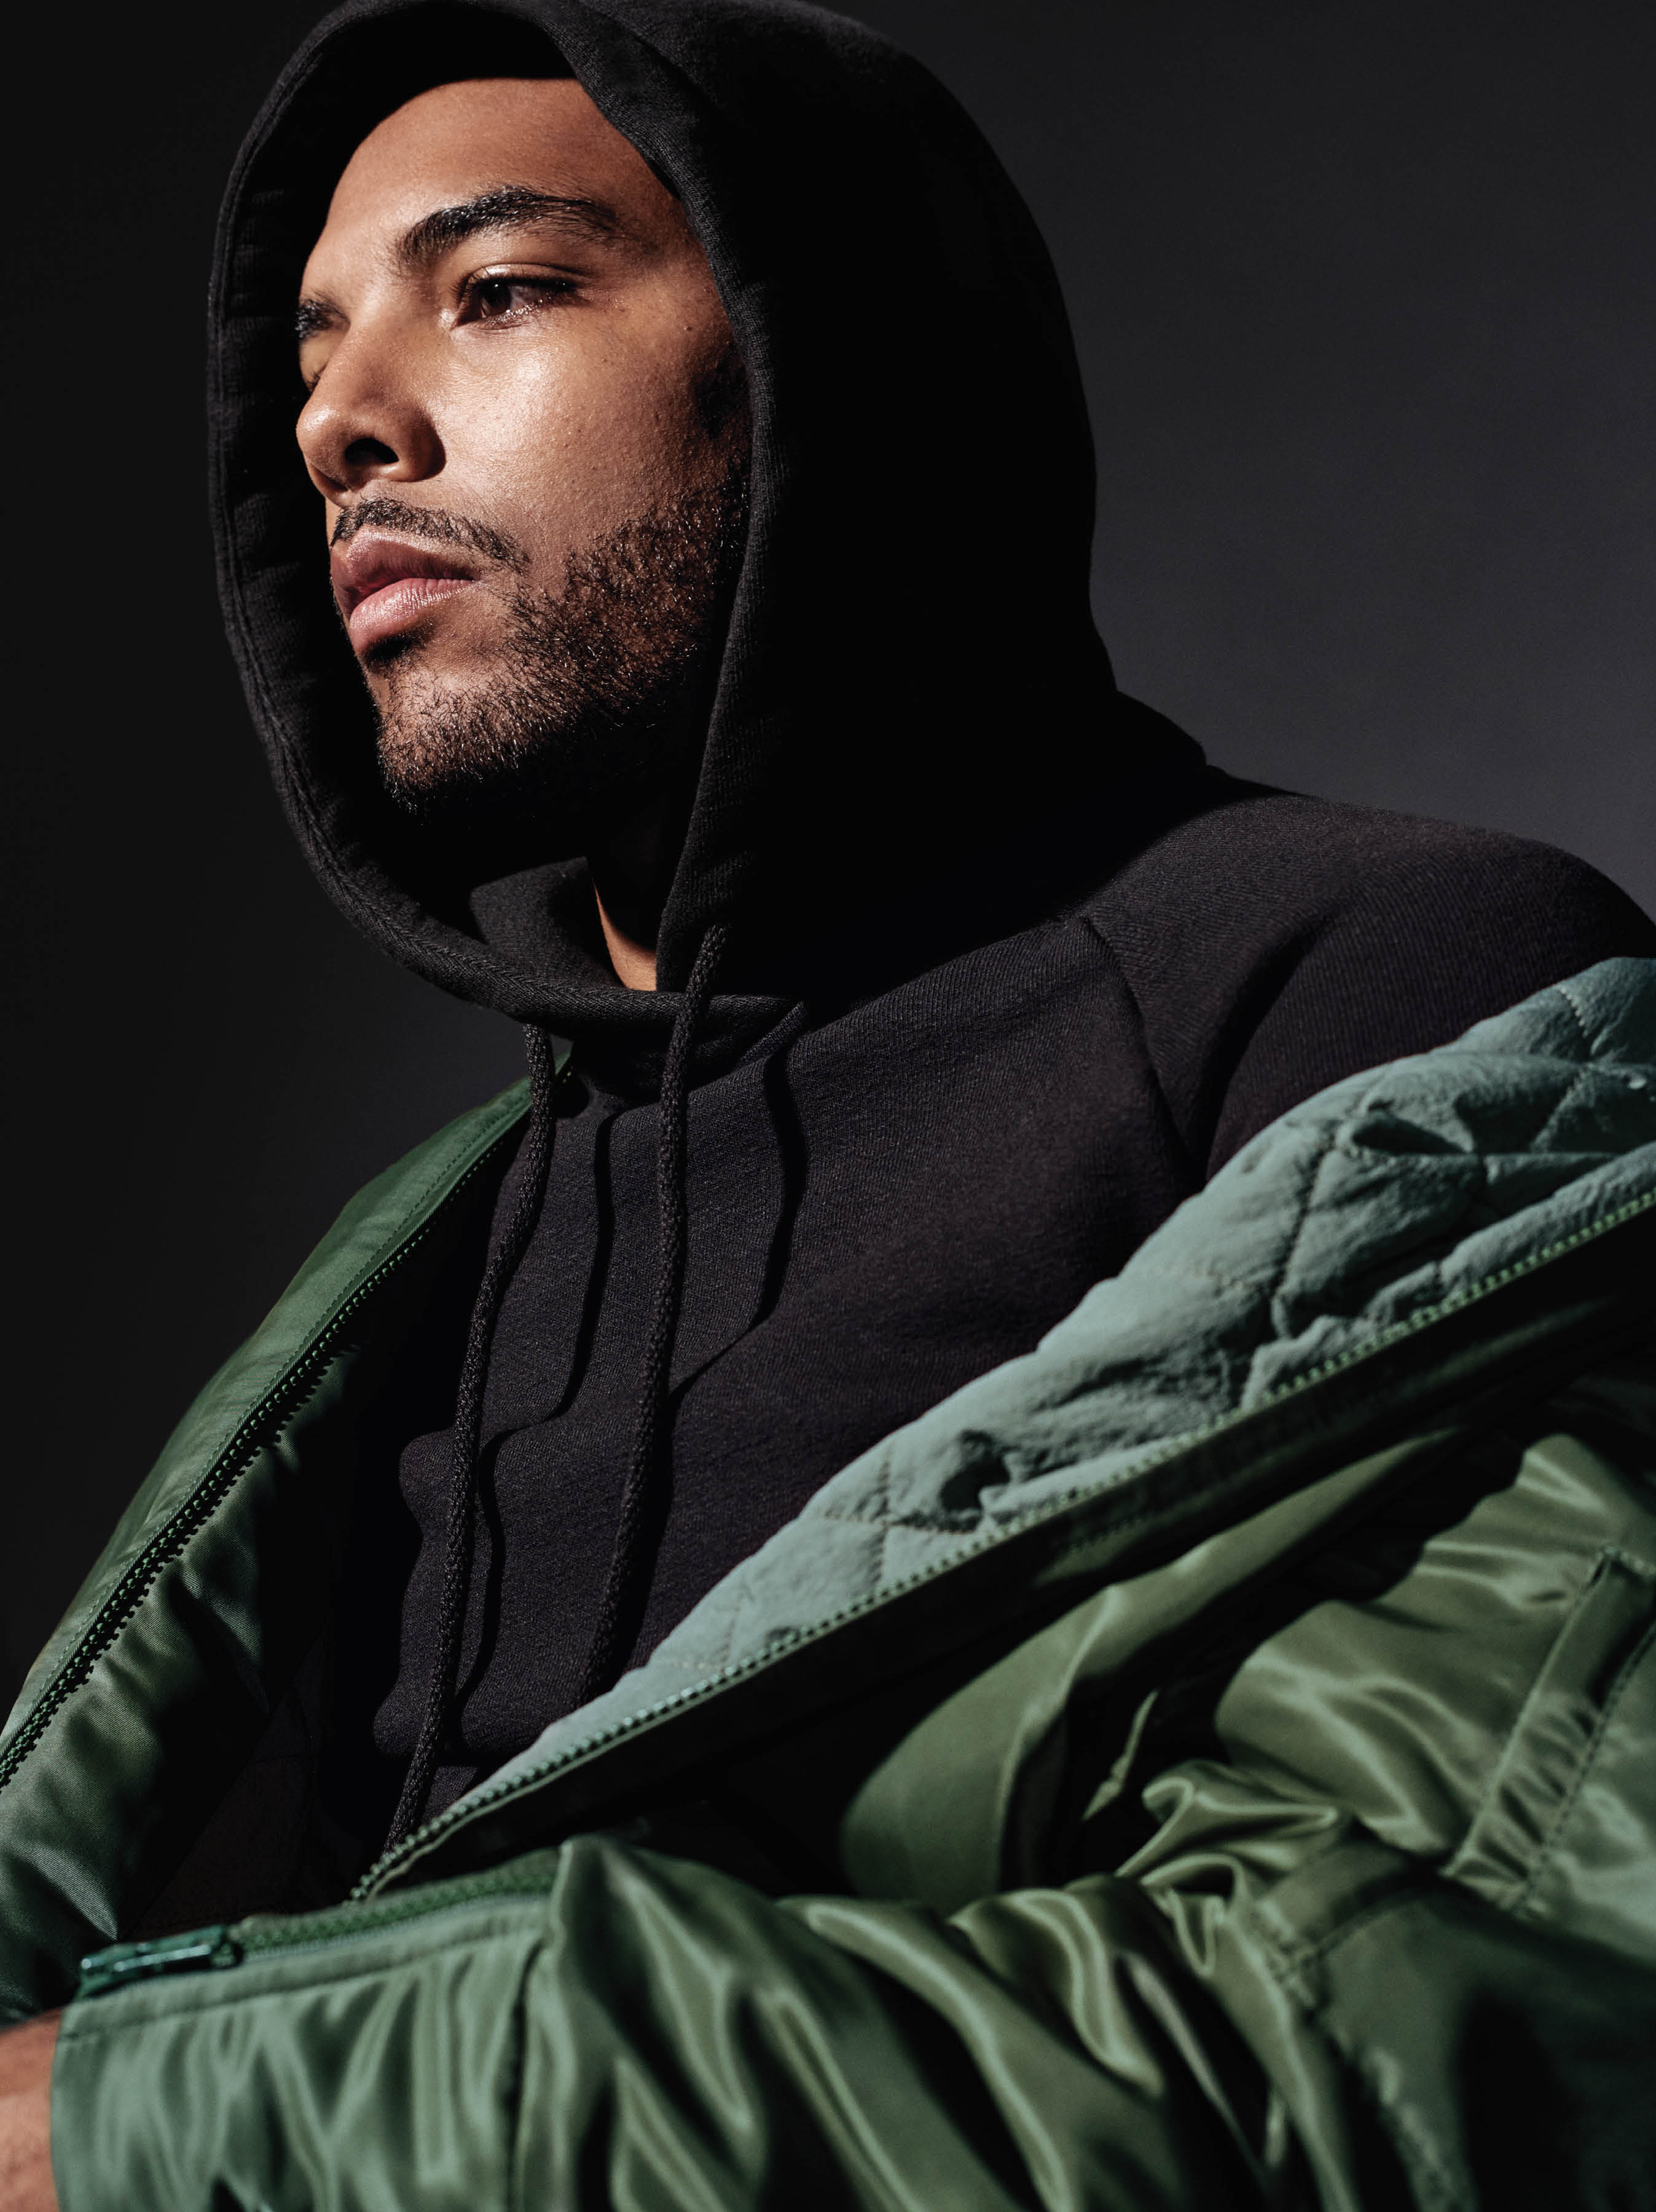 9d73ce225cdab Kanye West Enlists Up & Coming Artists to Model Adidas Yeezy Season 1  Collection